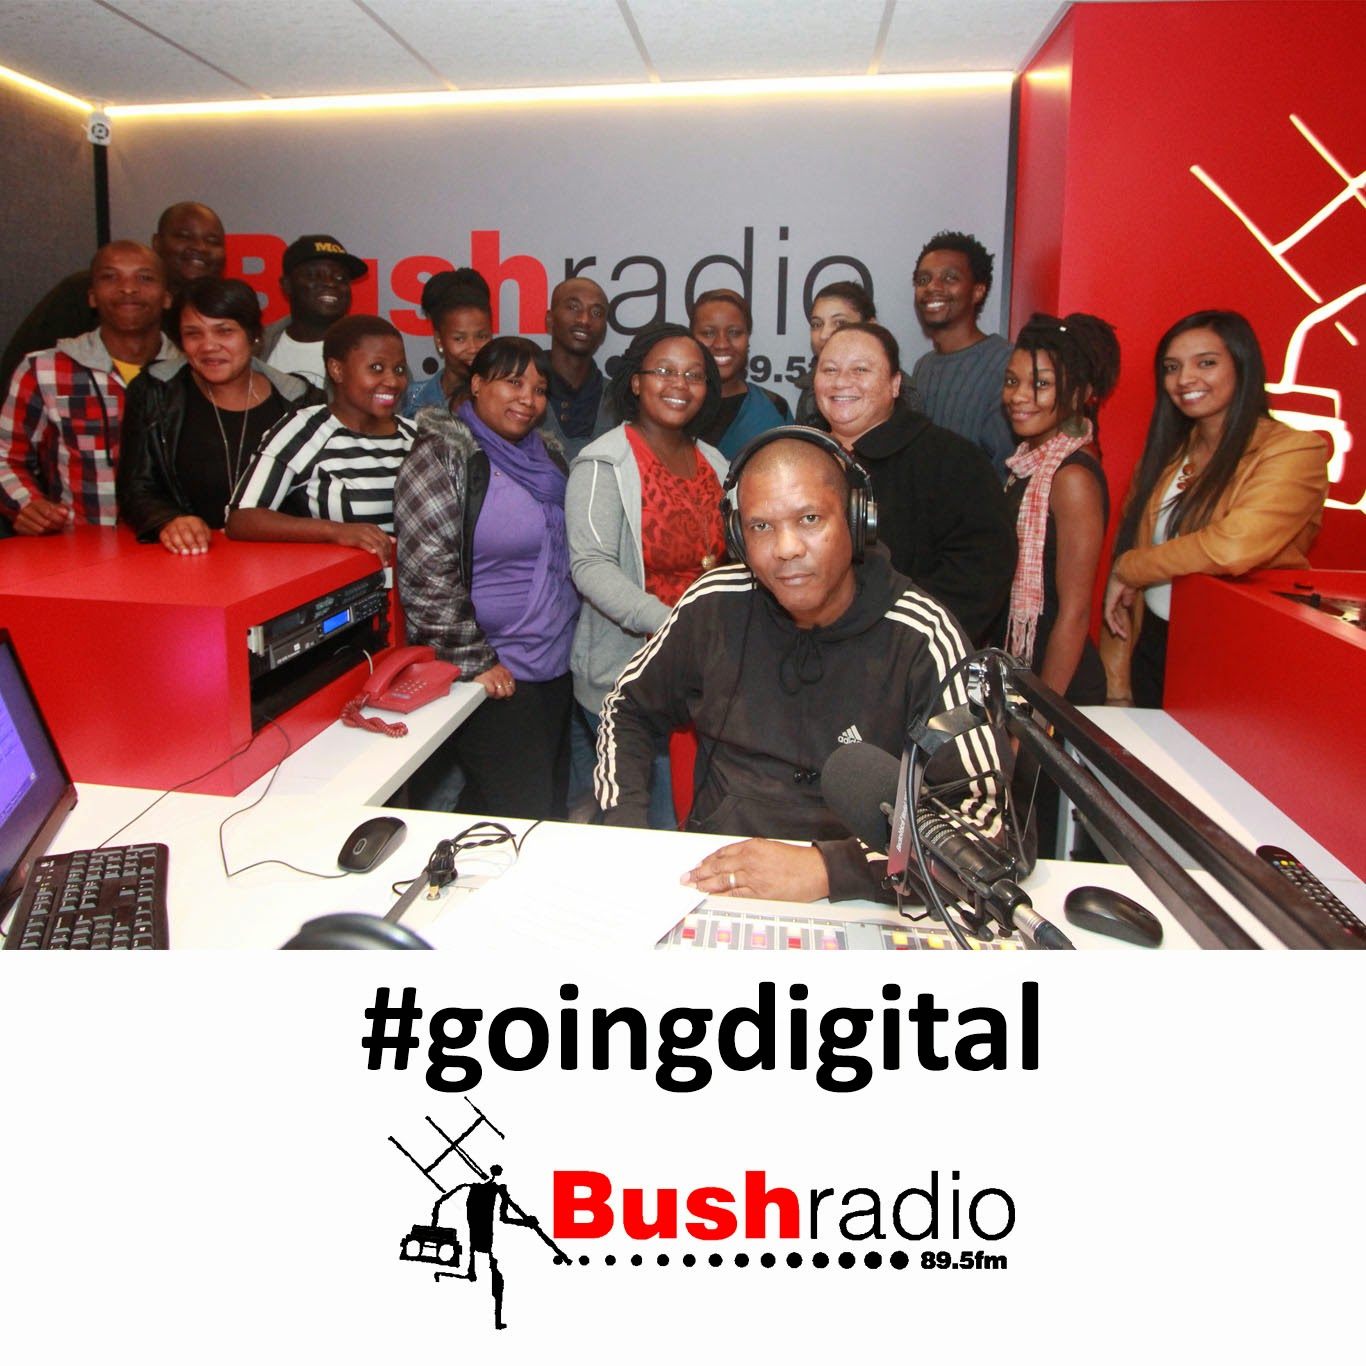 https://bushradio.wordpress.com/2015/05/01/going-digital/